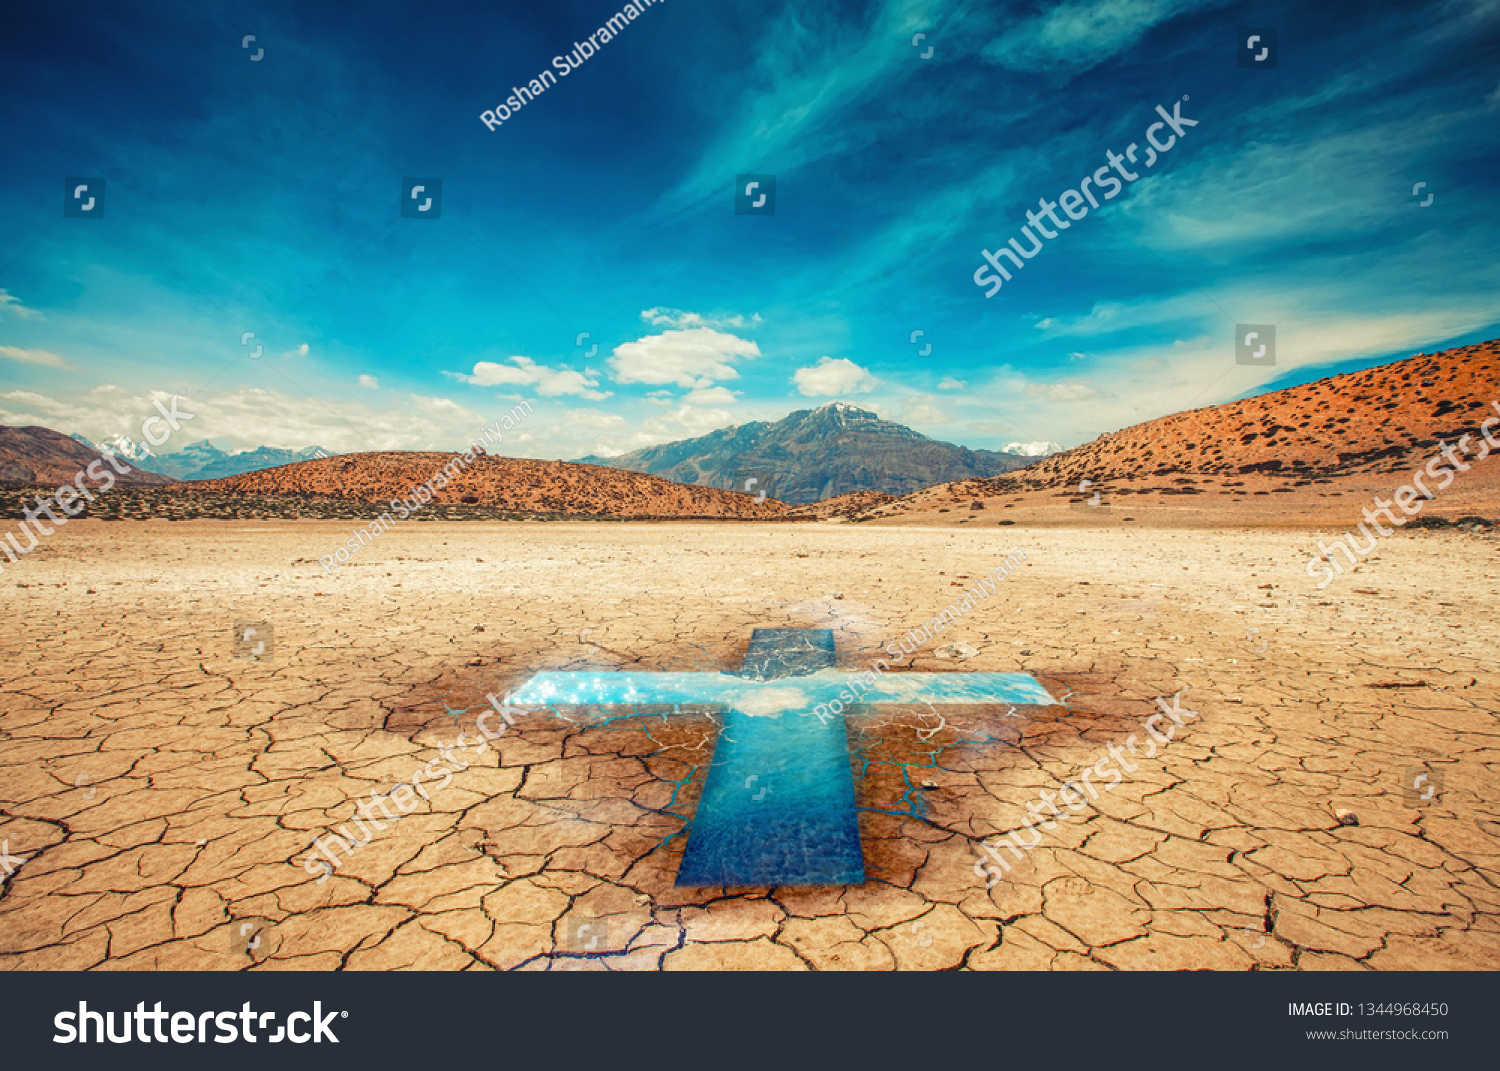 Cross Desertchristian Backgroundjesus Christ Crossworship Background Stock Photo Edit Now 1344968450